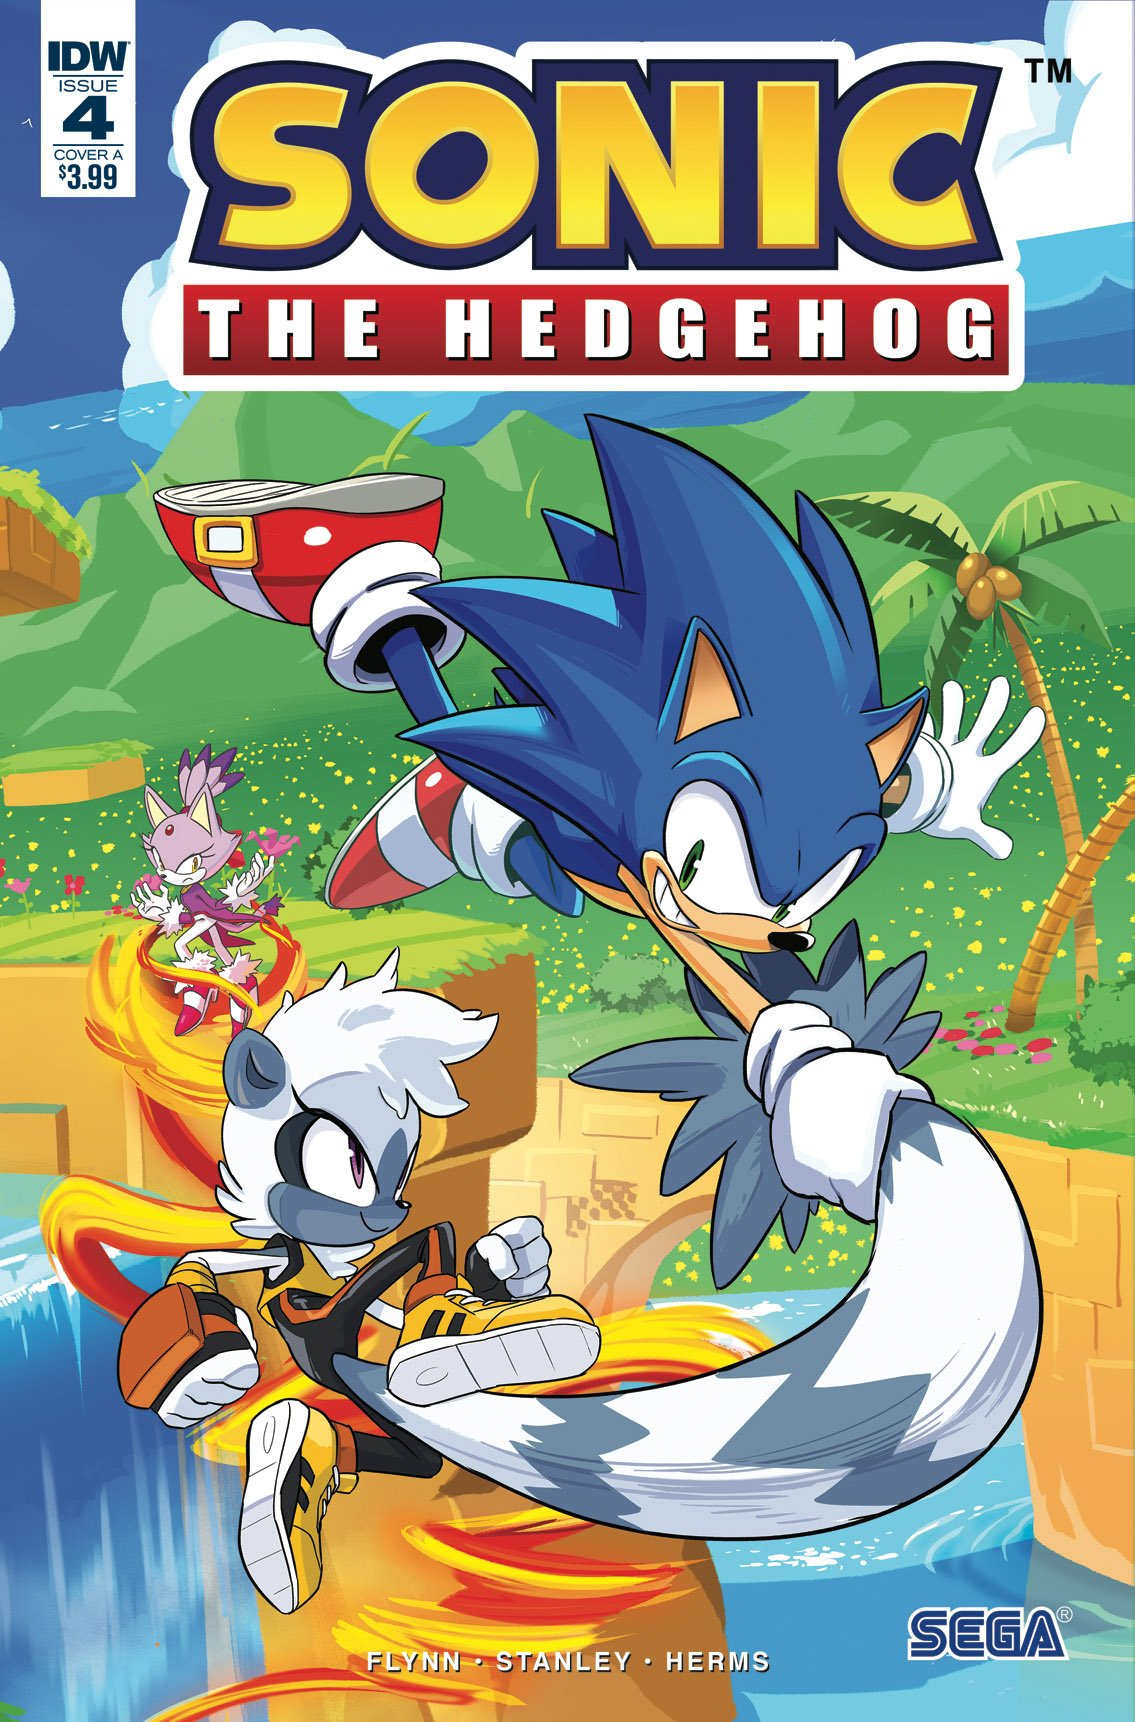 Sonic the Hedgehog 004 (April 2018) (cover a)